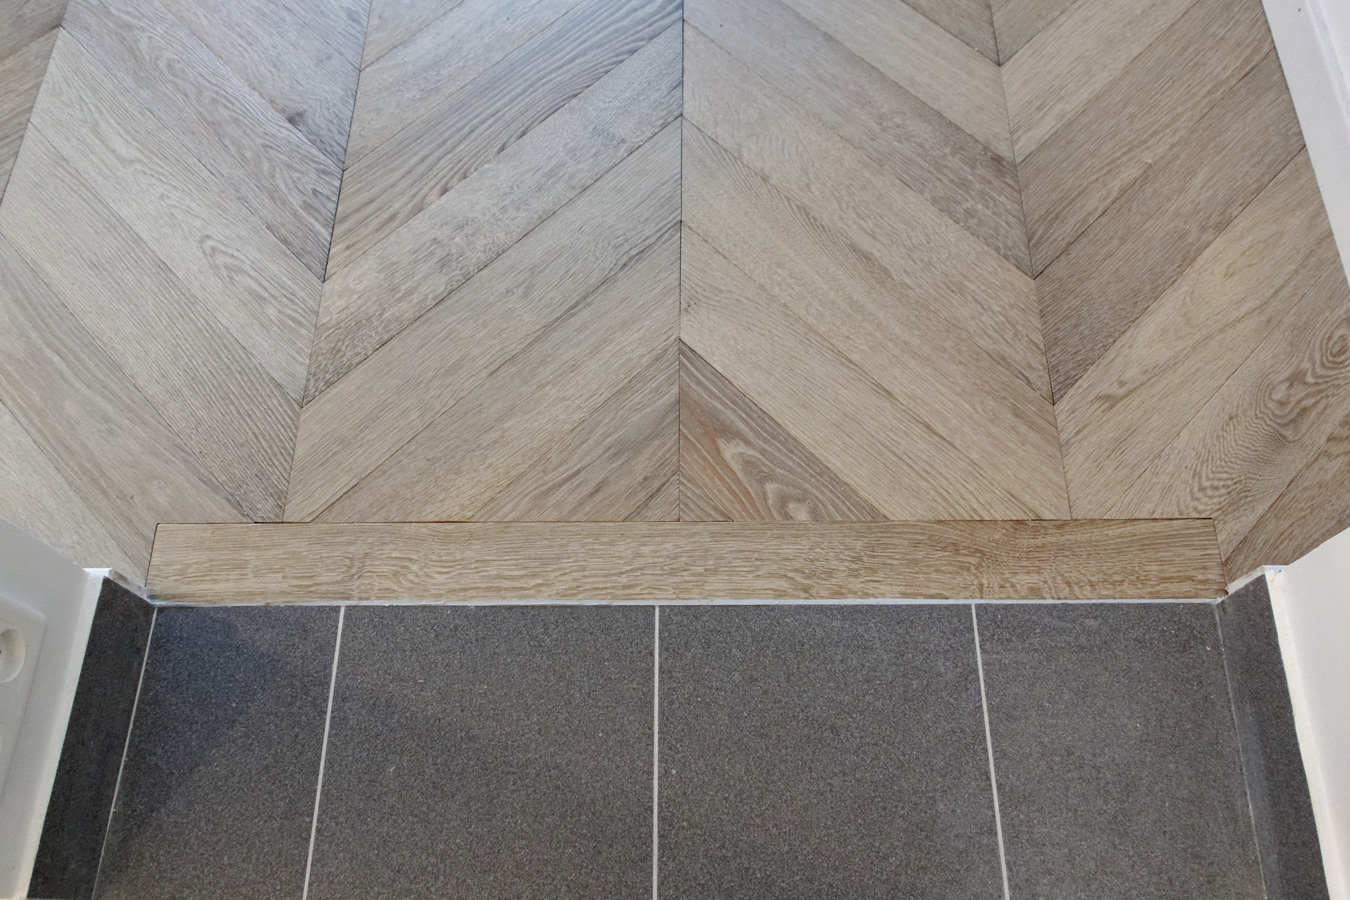 Atelier des granges french parquet connection with for Barre de jonction parquet carrelage